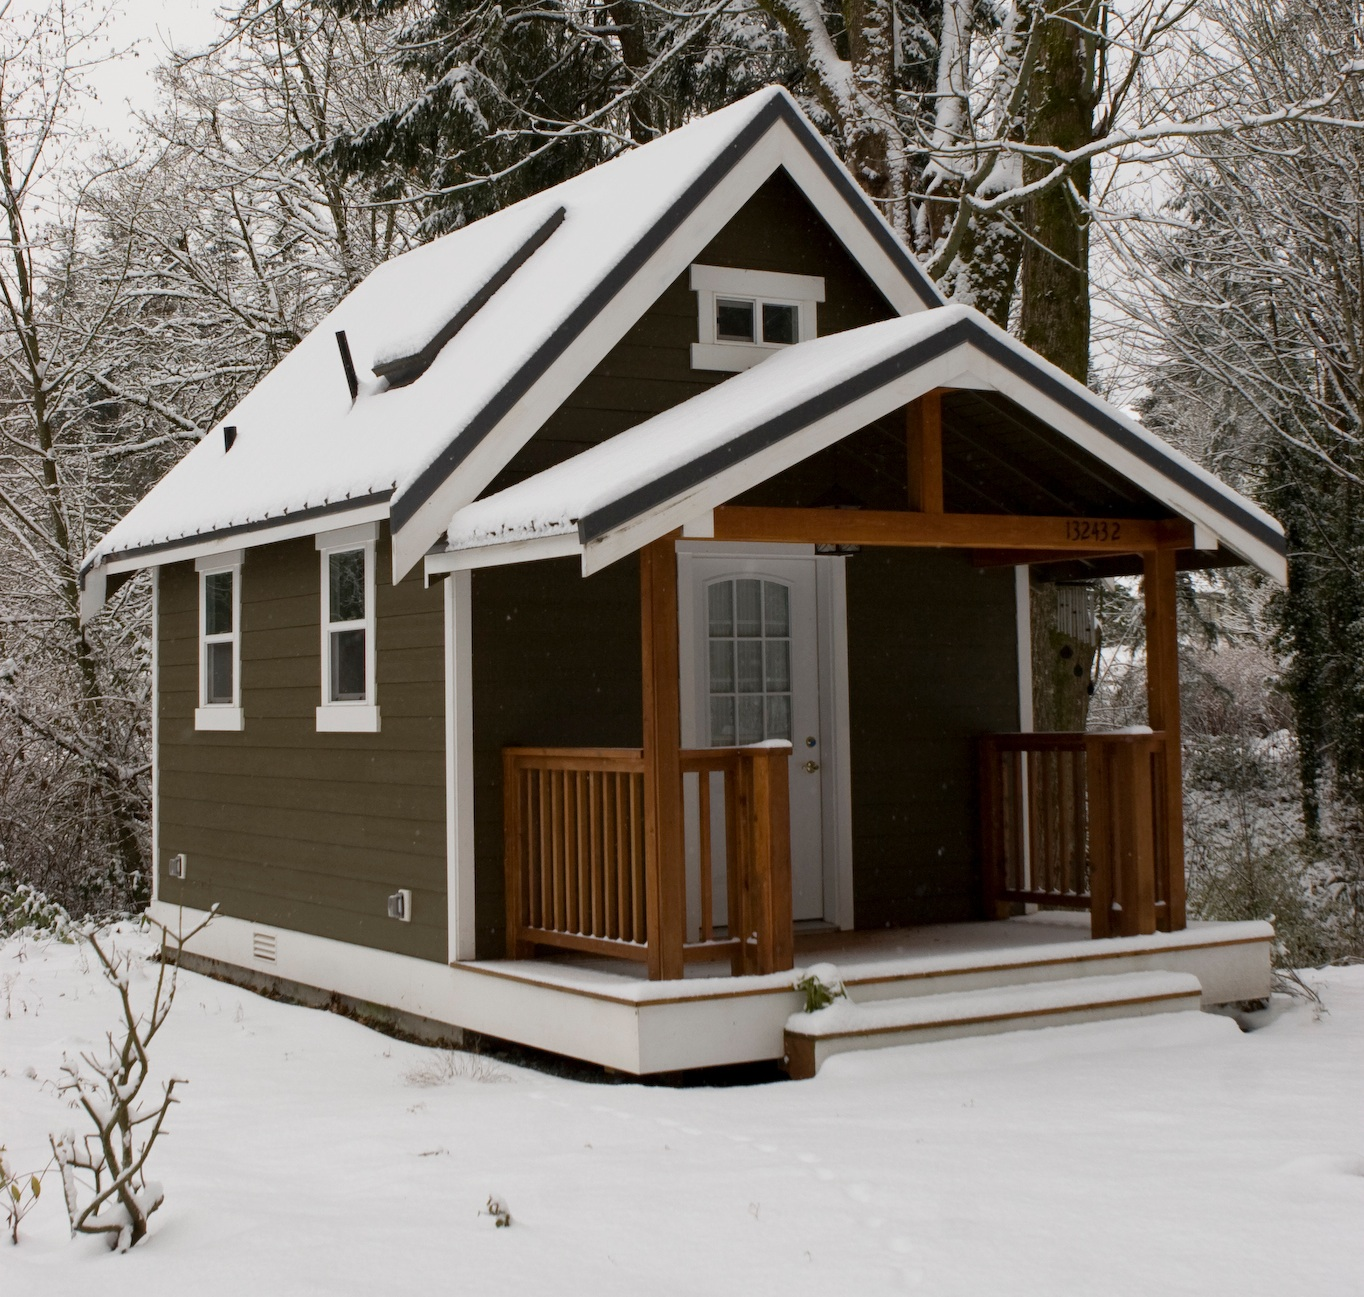 The average cost to build a tiny house tiny houses for Average cost to build an a frame house